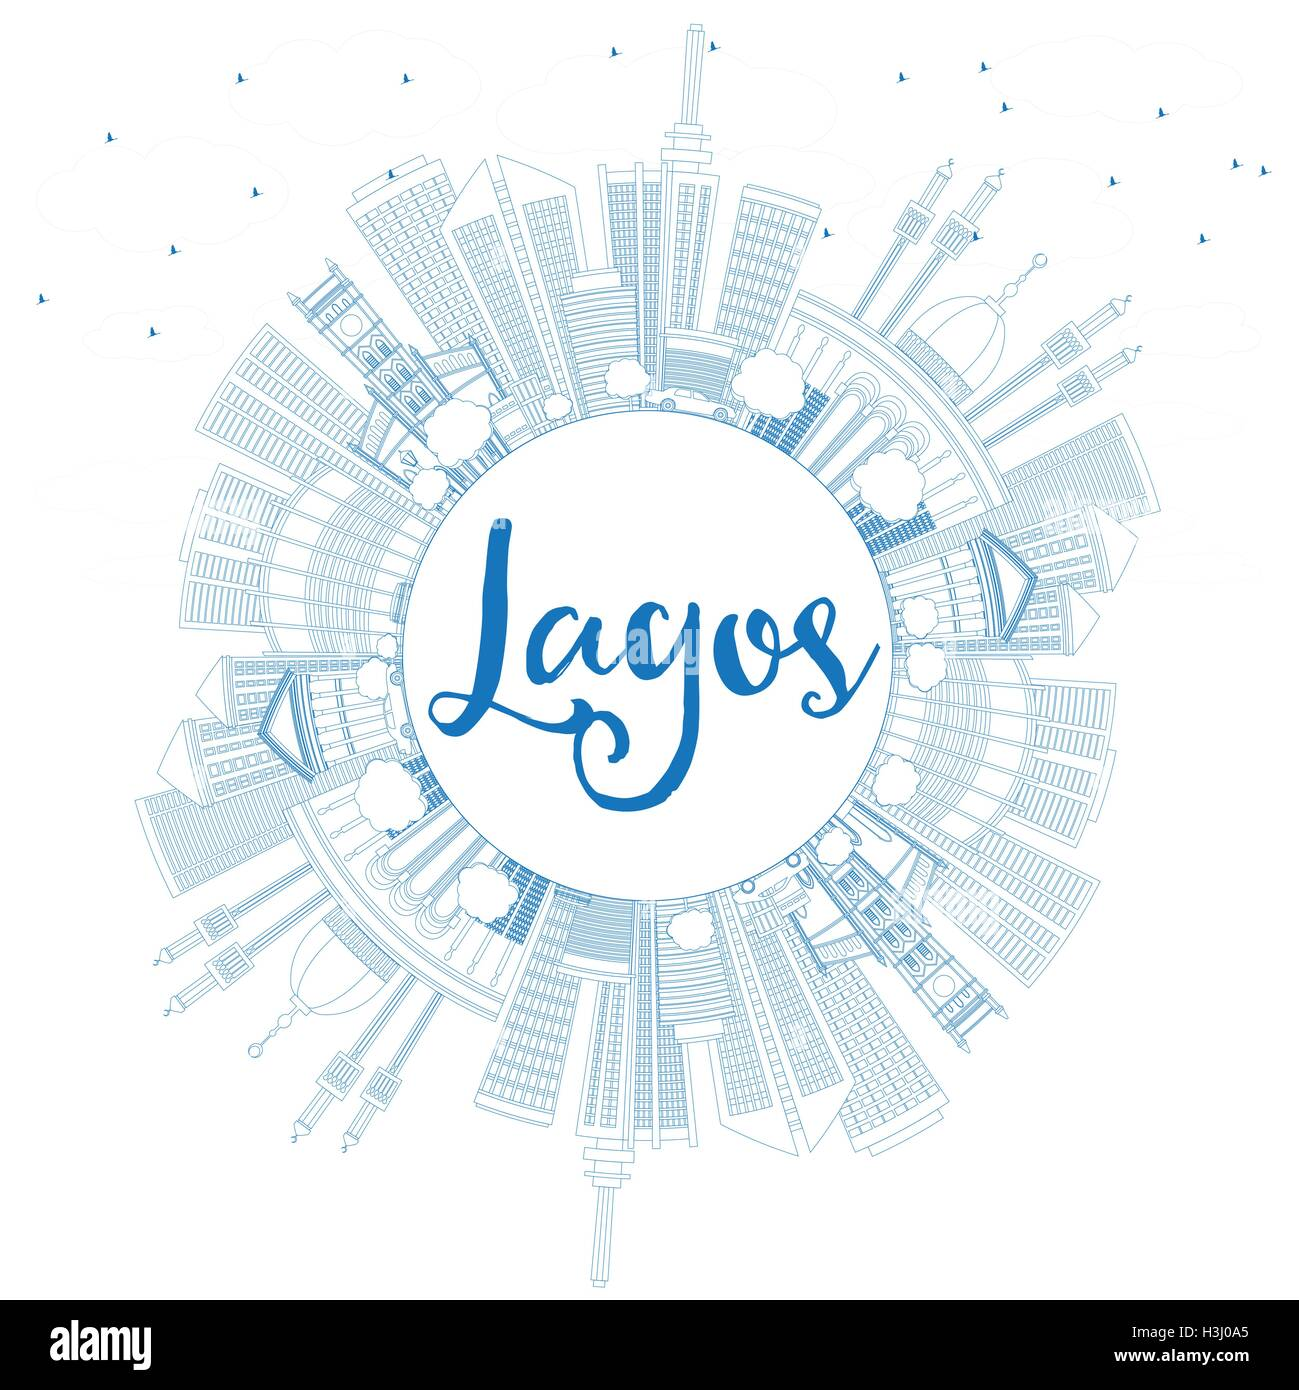 Outline Lagos Skyline with Blue Buildings and Copy Space. Vector Illustration. Business Travel and Tourism Concept - Stock Image